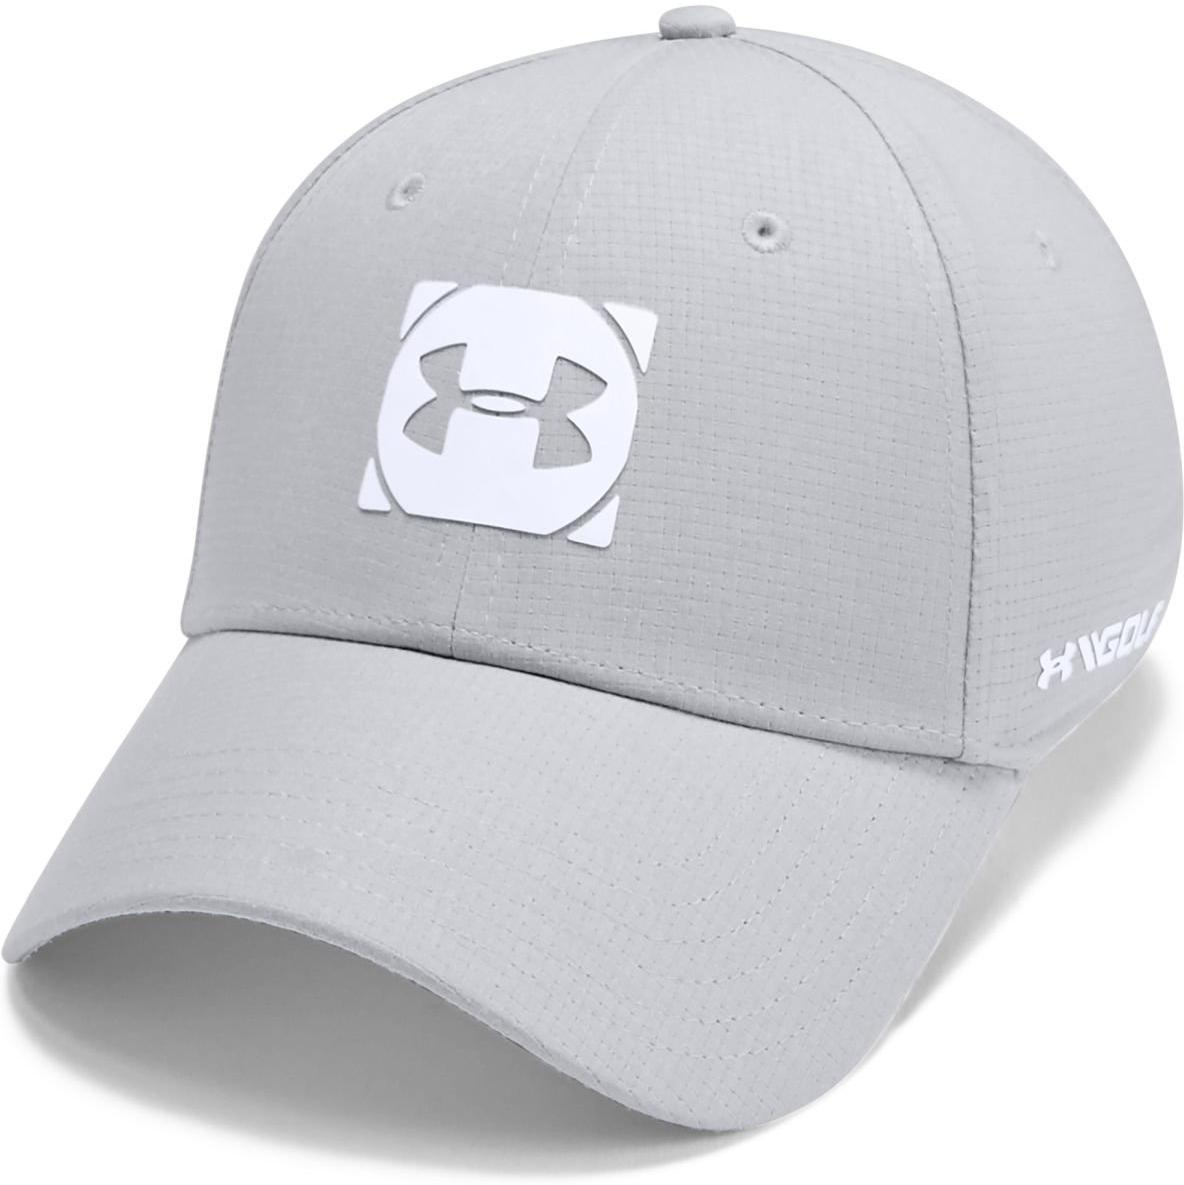 Under Armour Mens Official Tour Cap 3.0 Mod Gray - ML (55-58)